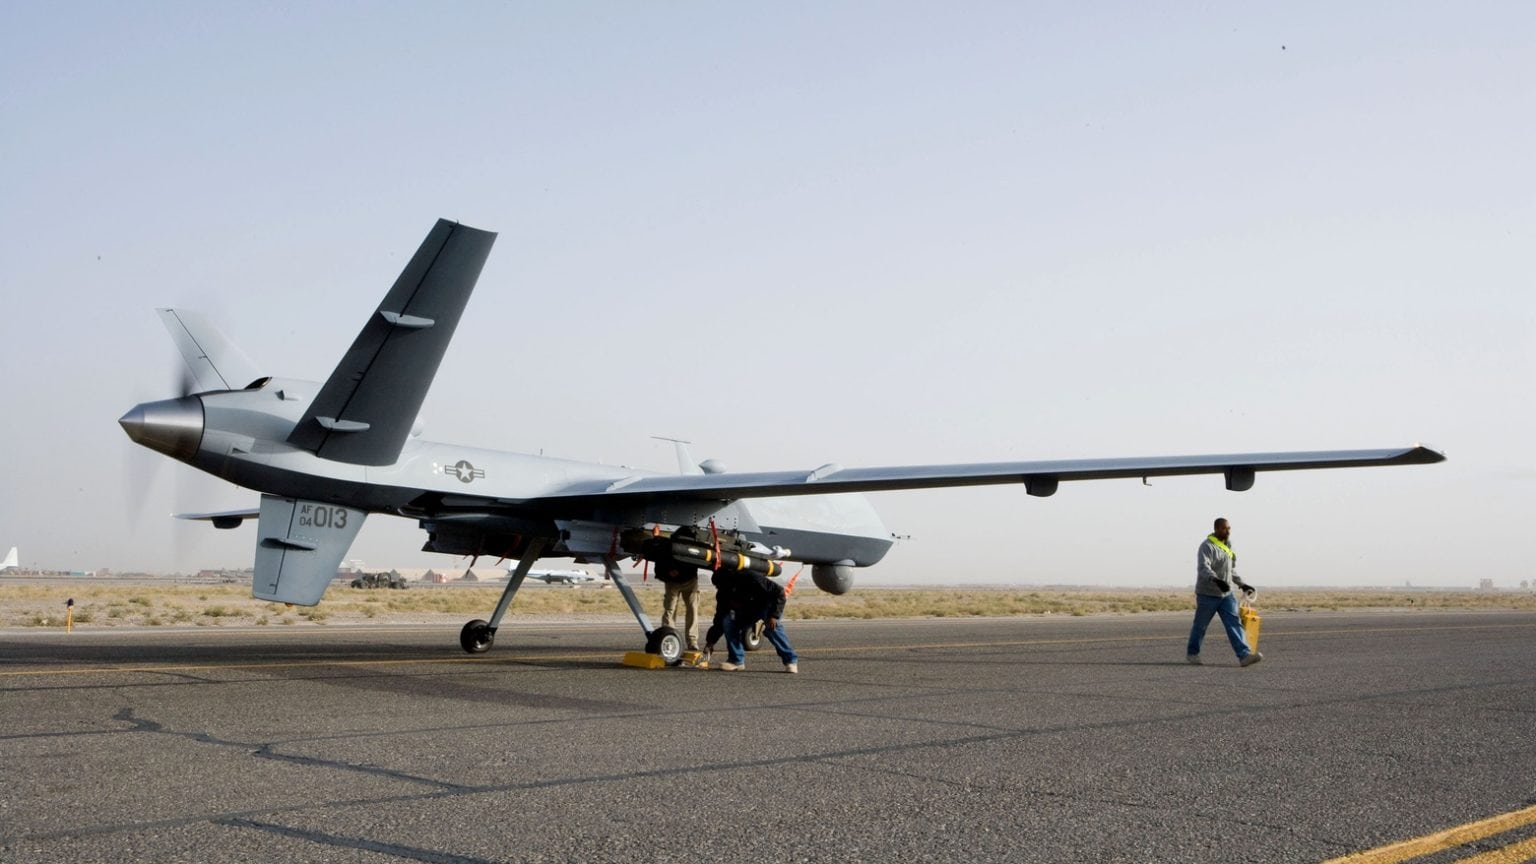 A MQ-9 Reaper drone won't ever have Apple AI software.